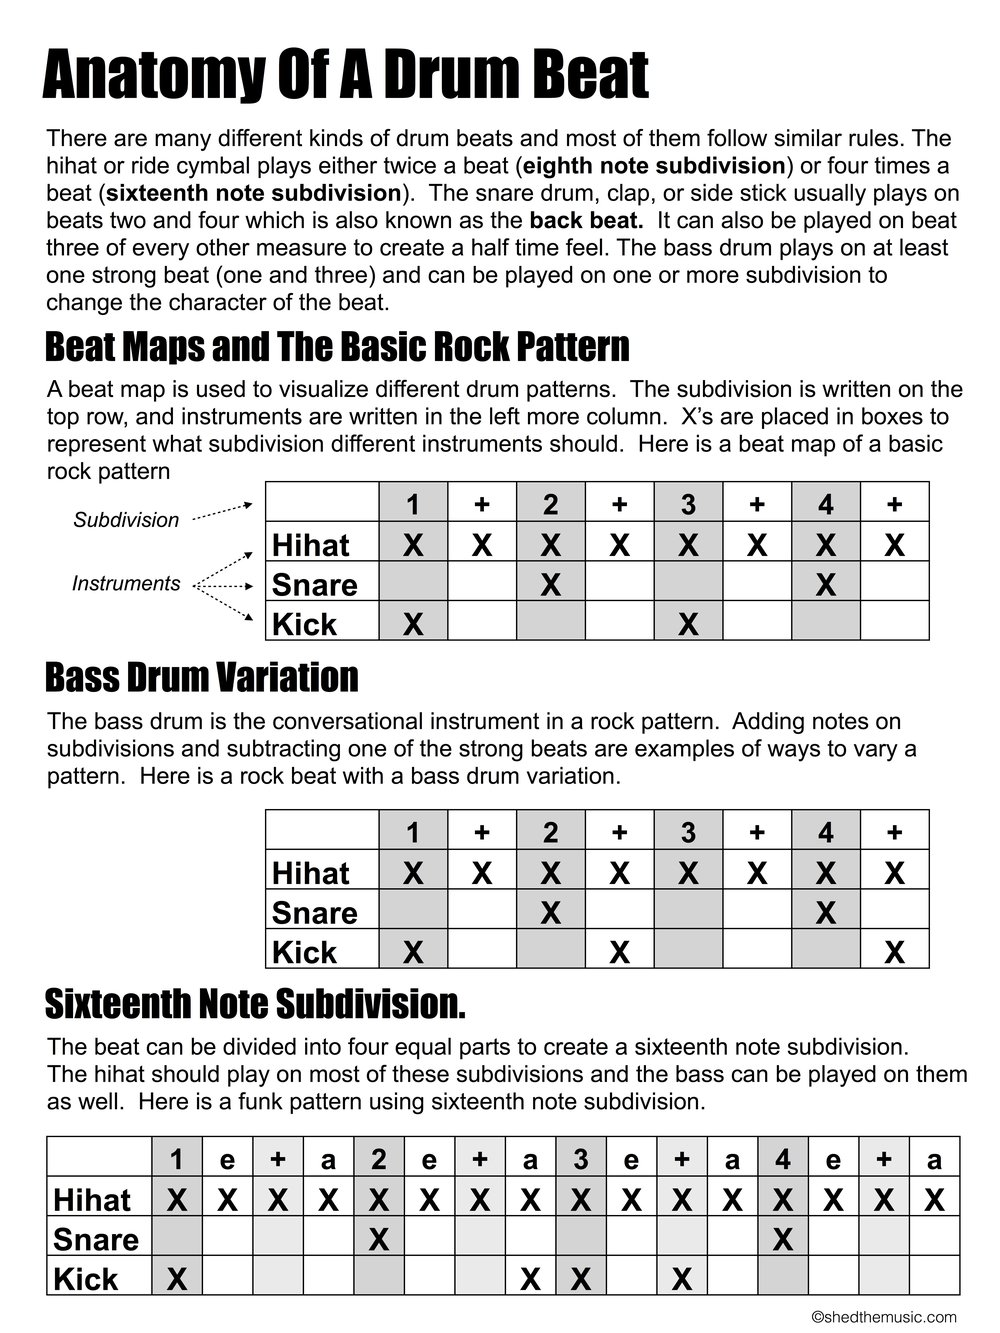 Anatomy of a drum beat.jpg